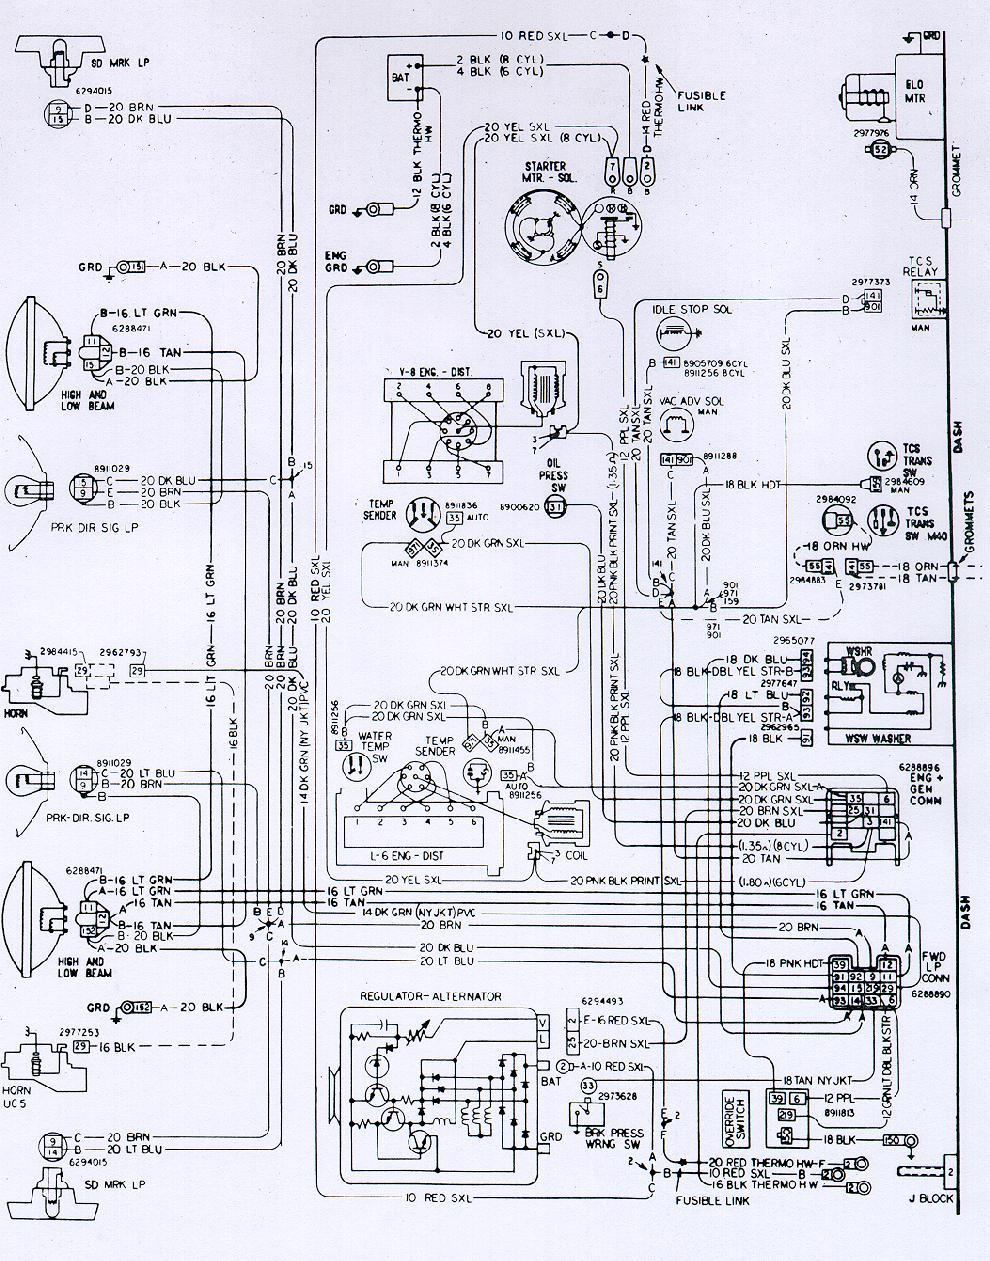 hight resolution of camaro wiring electrical information 69 chevy camaro electrical diagram 1970 camaro wiring diagram as well chevy